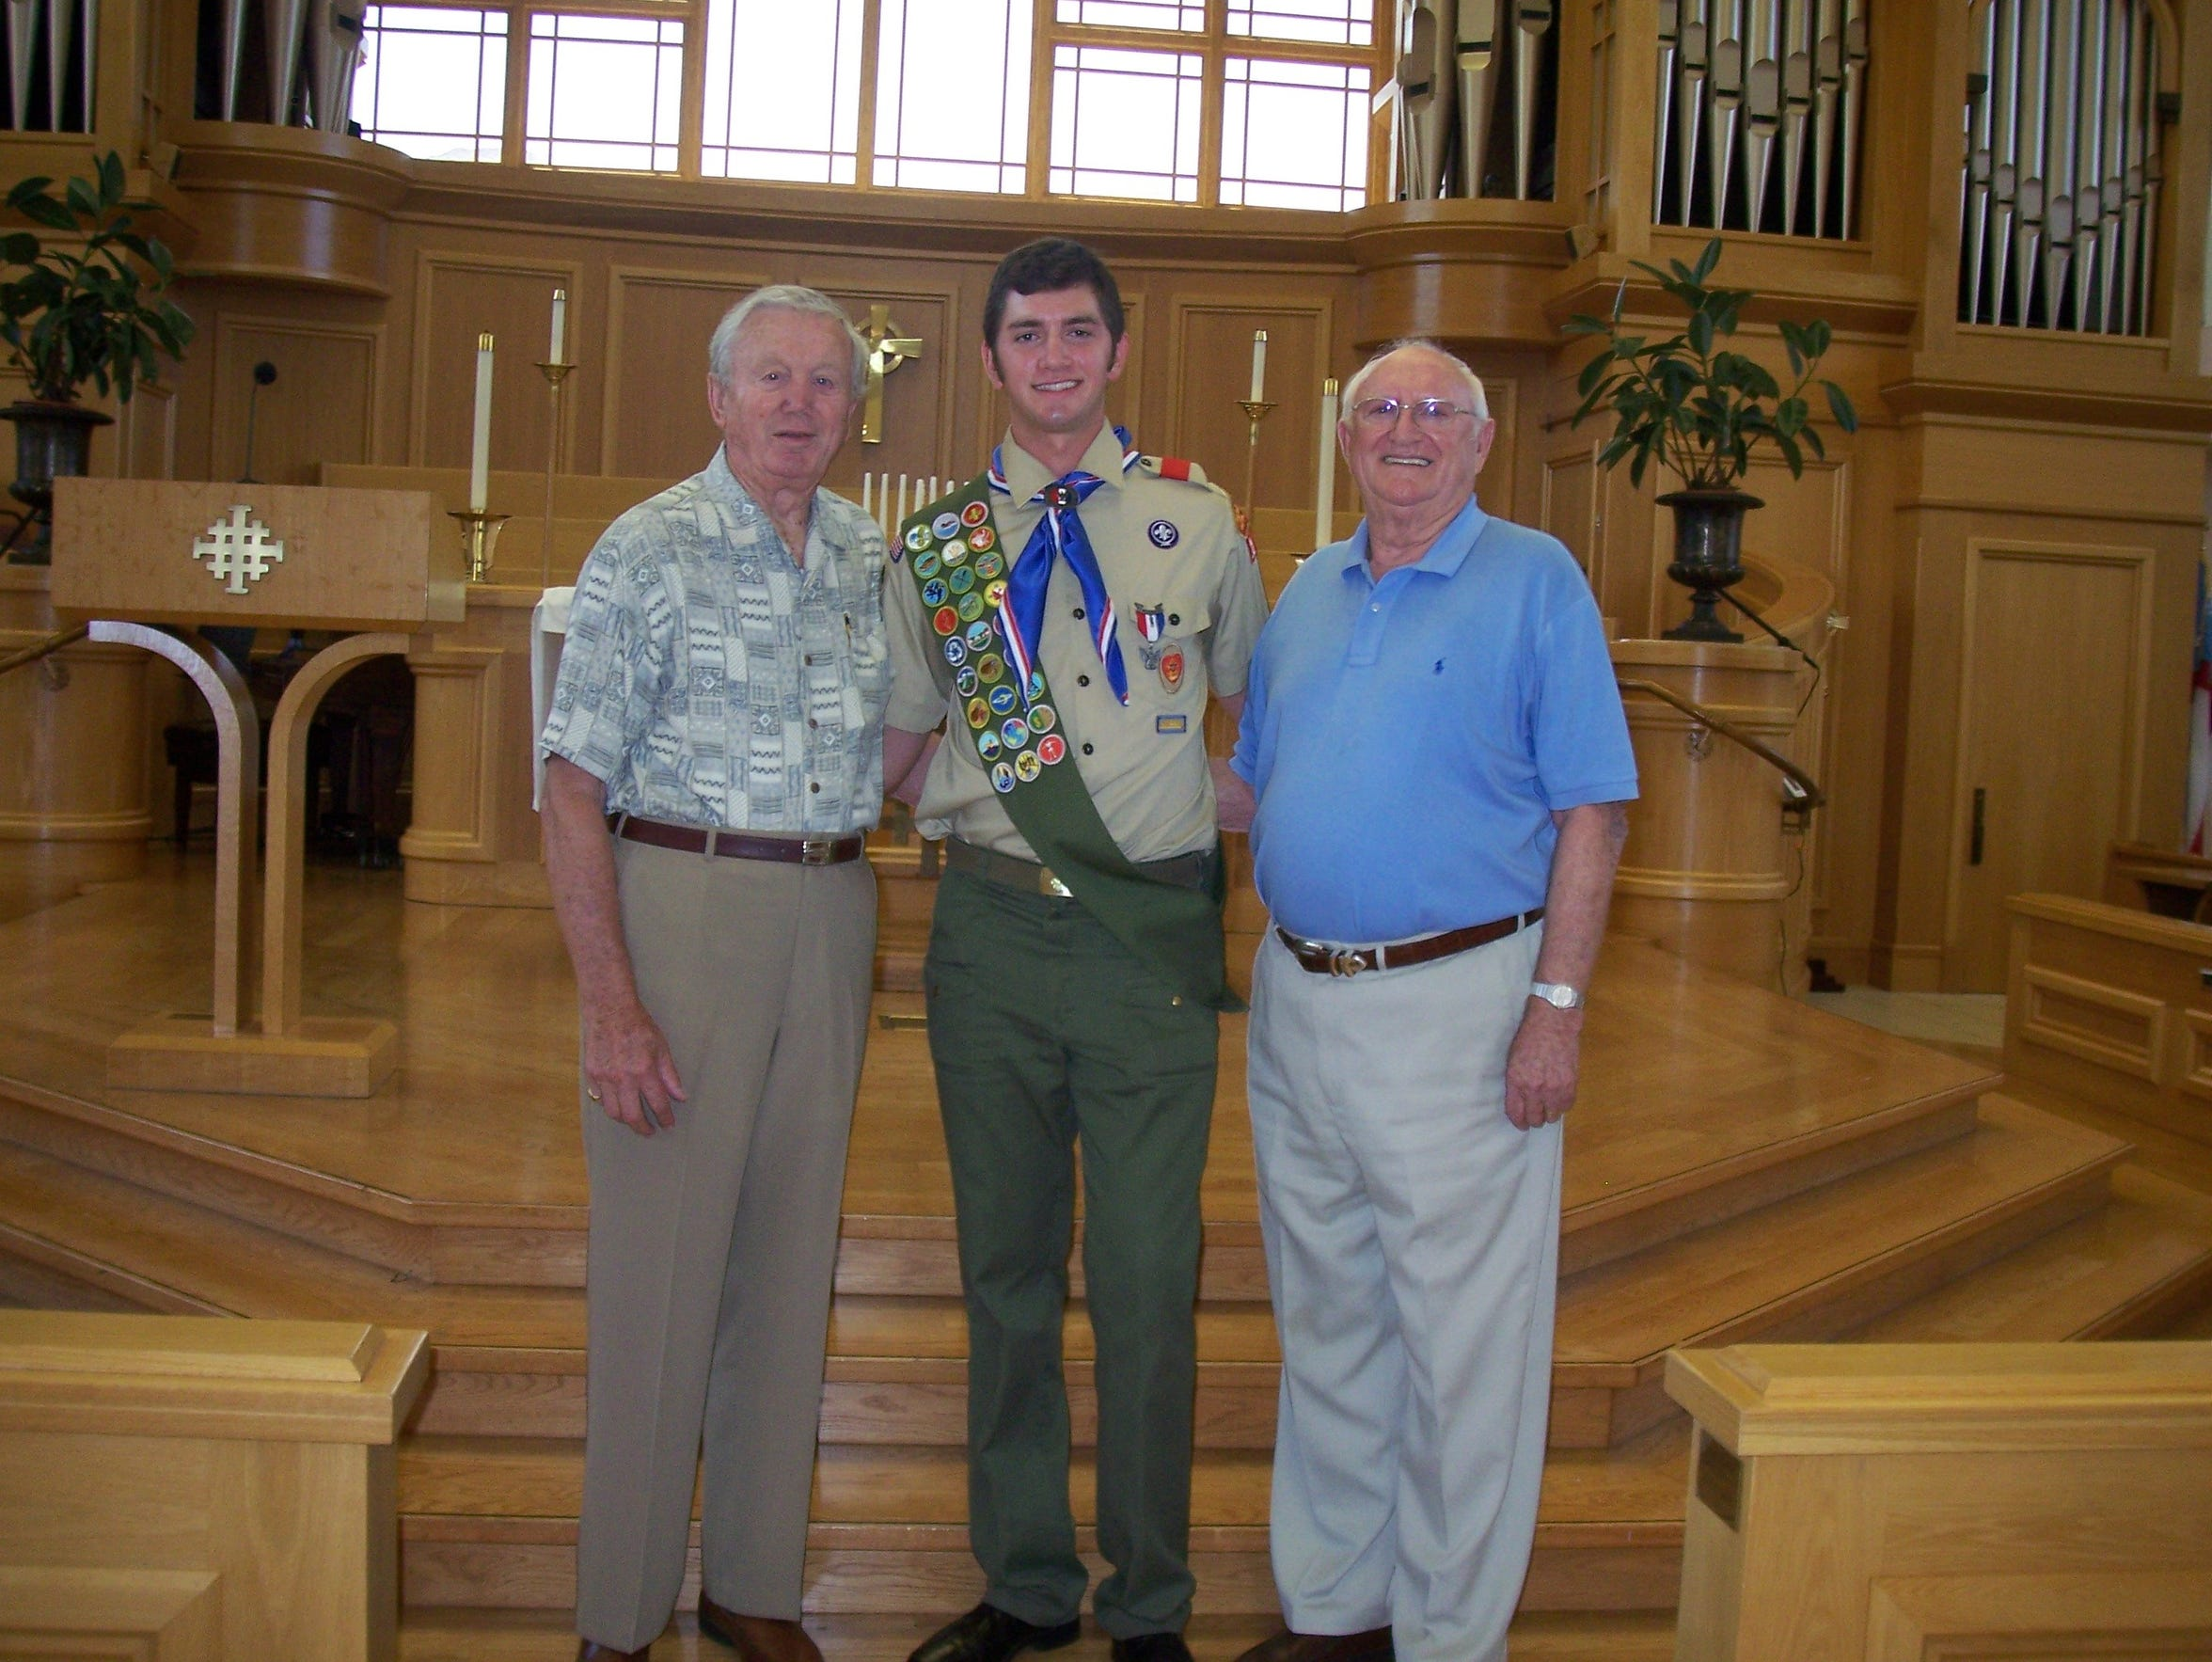 Matt Fletcher, along with his grandfathers, at his Eagle Scout ceremony